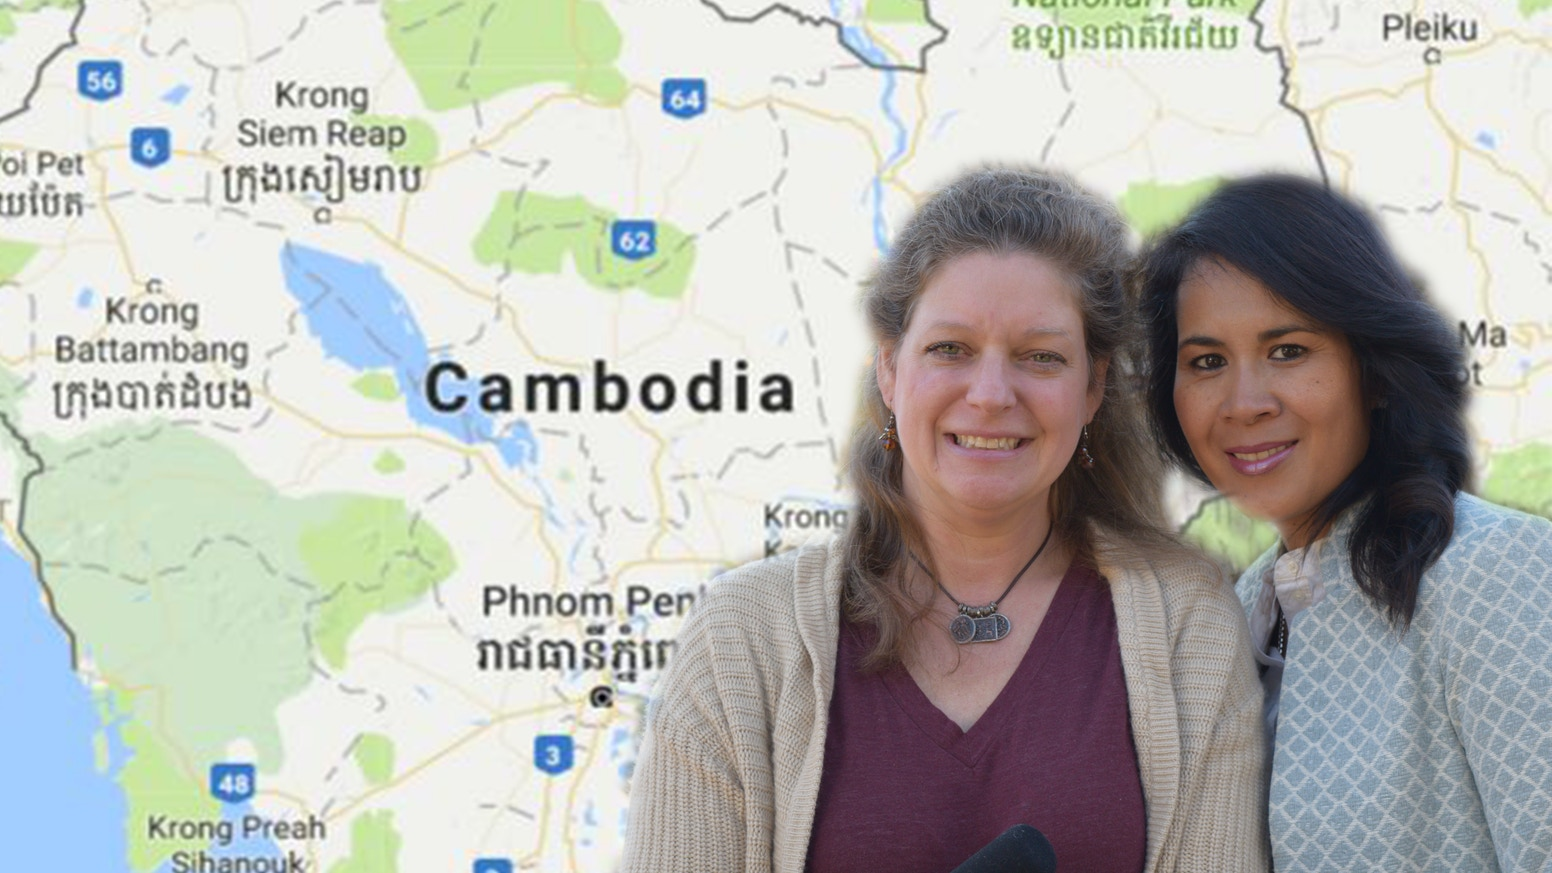 A Survivor of the brutal Khmer Rouge regime returns with her family to Cambodia in January 2017. Help me tell her story. .